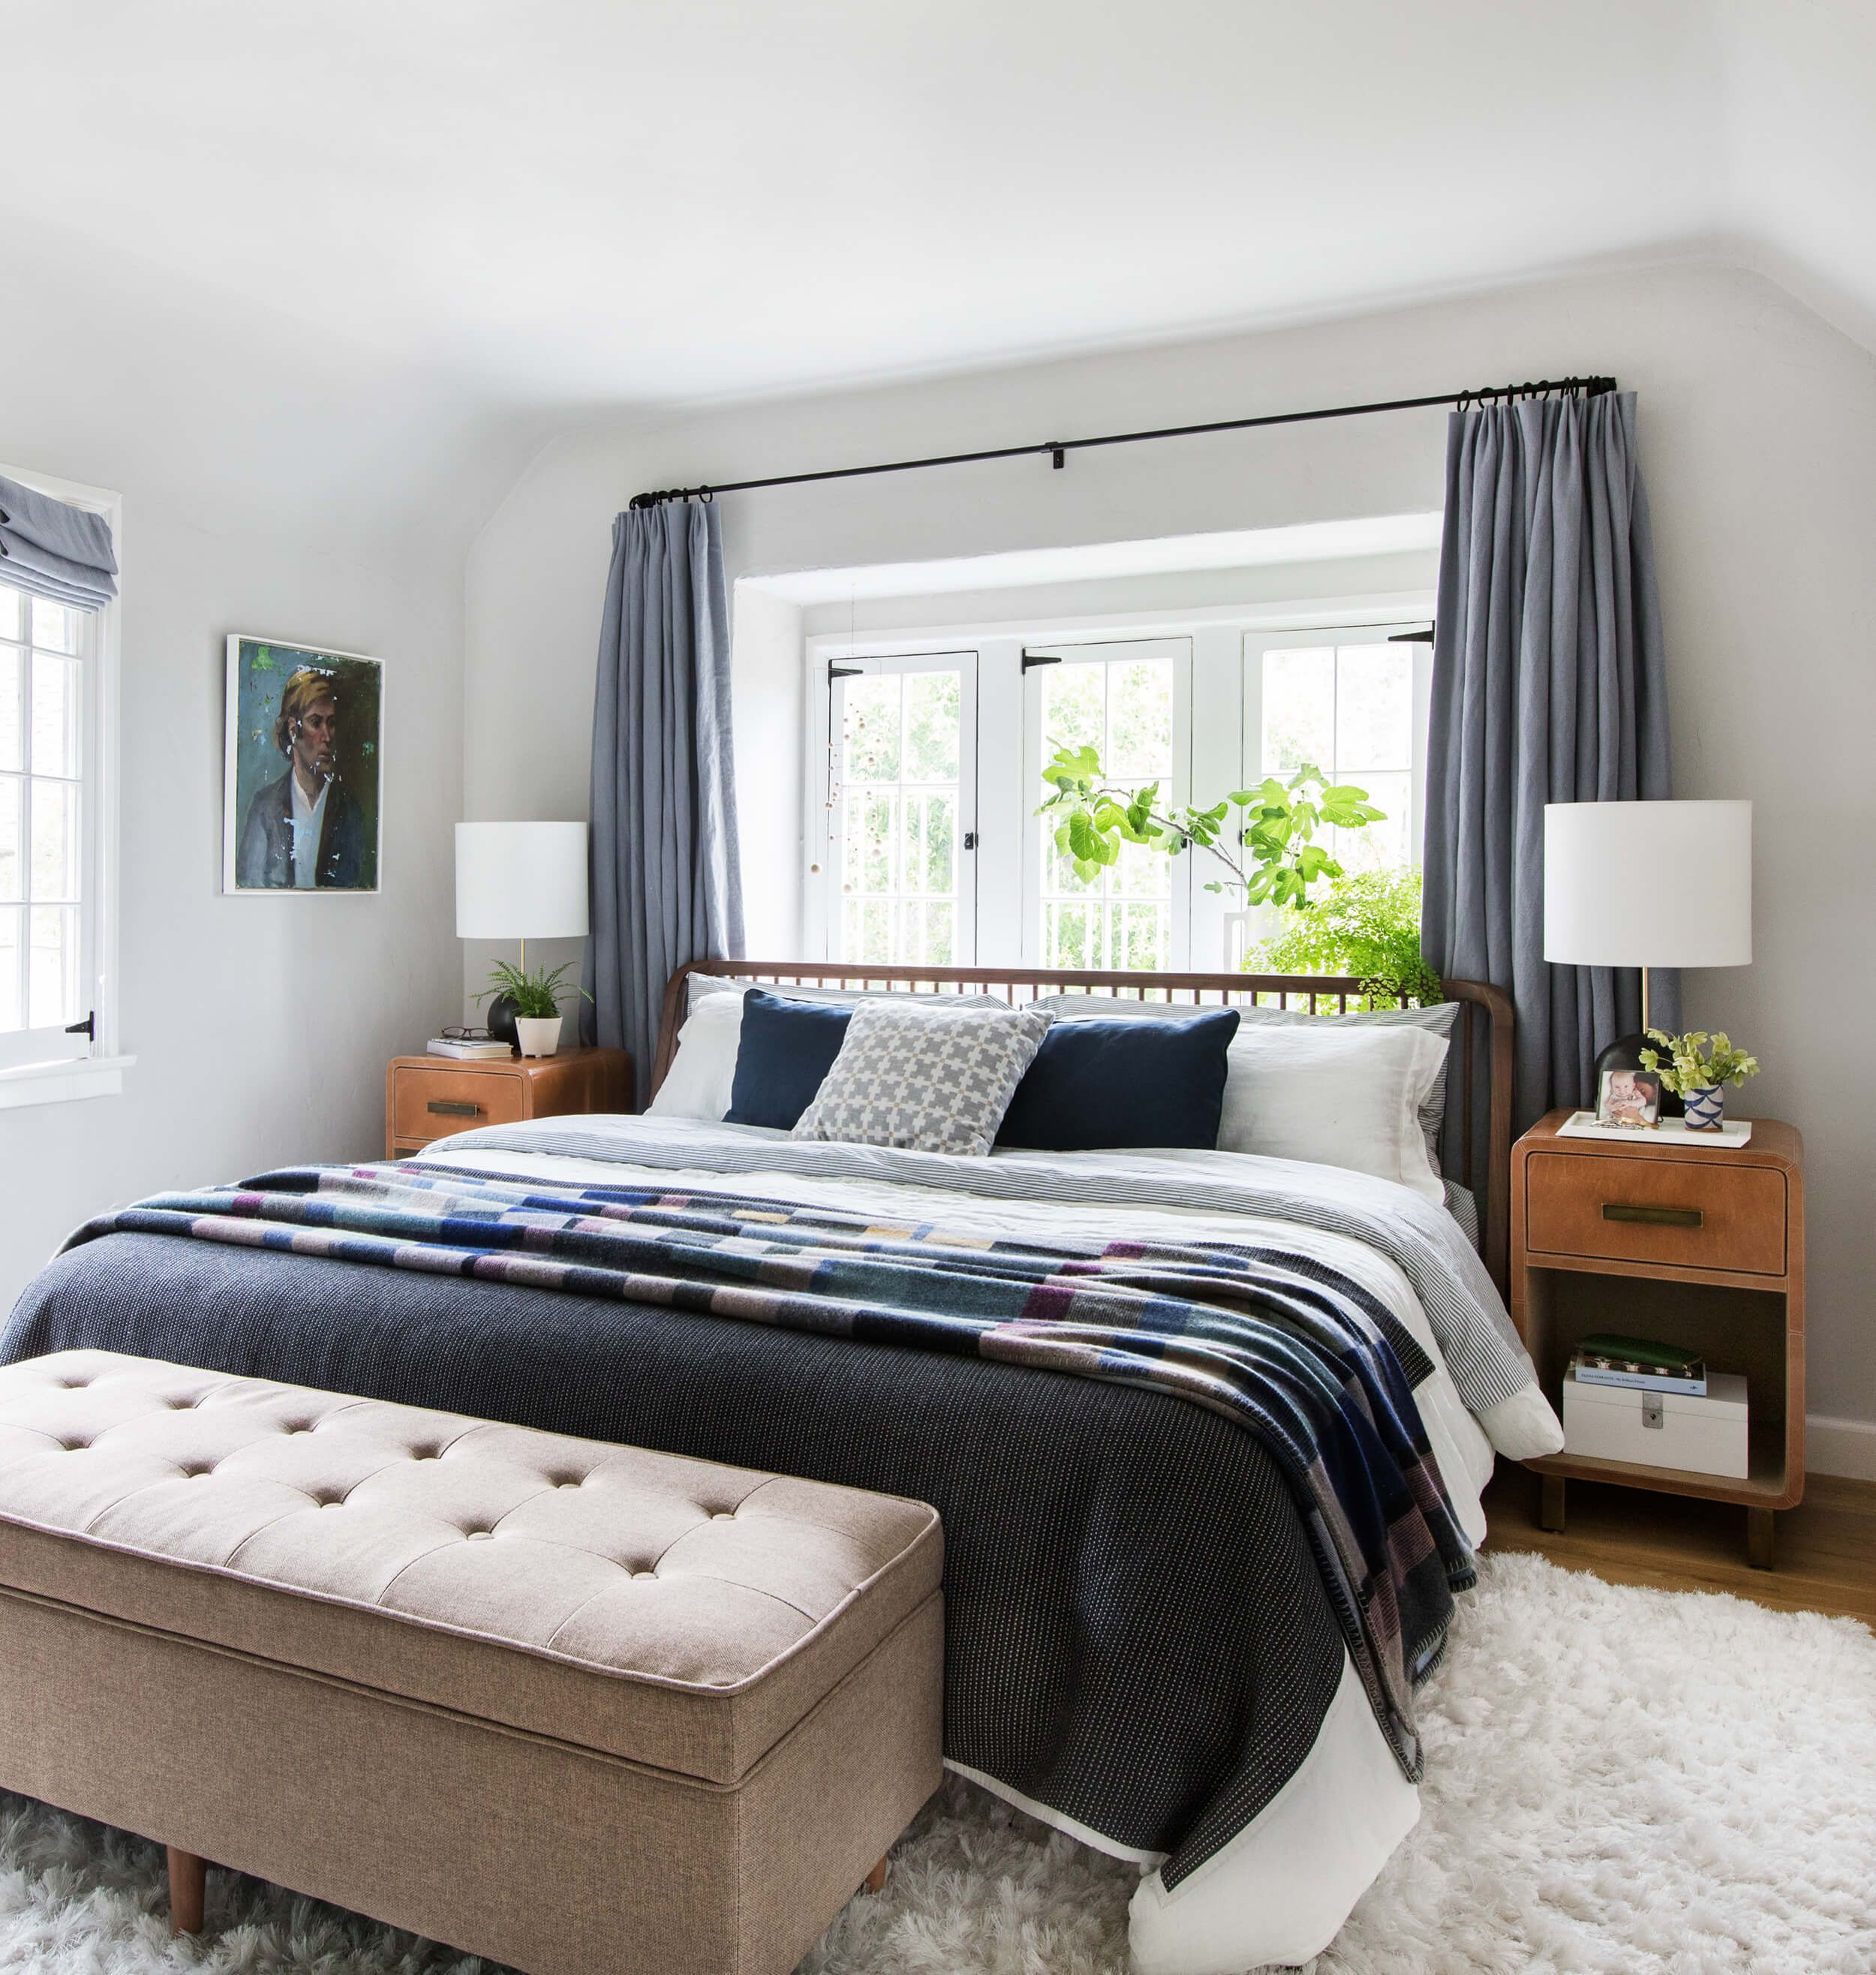 6 Pro Tricks to Know When Arranging Your Room | Pinterest | Master ...